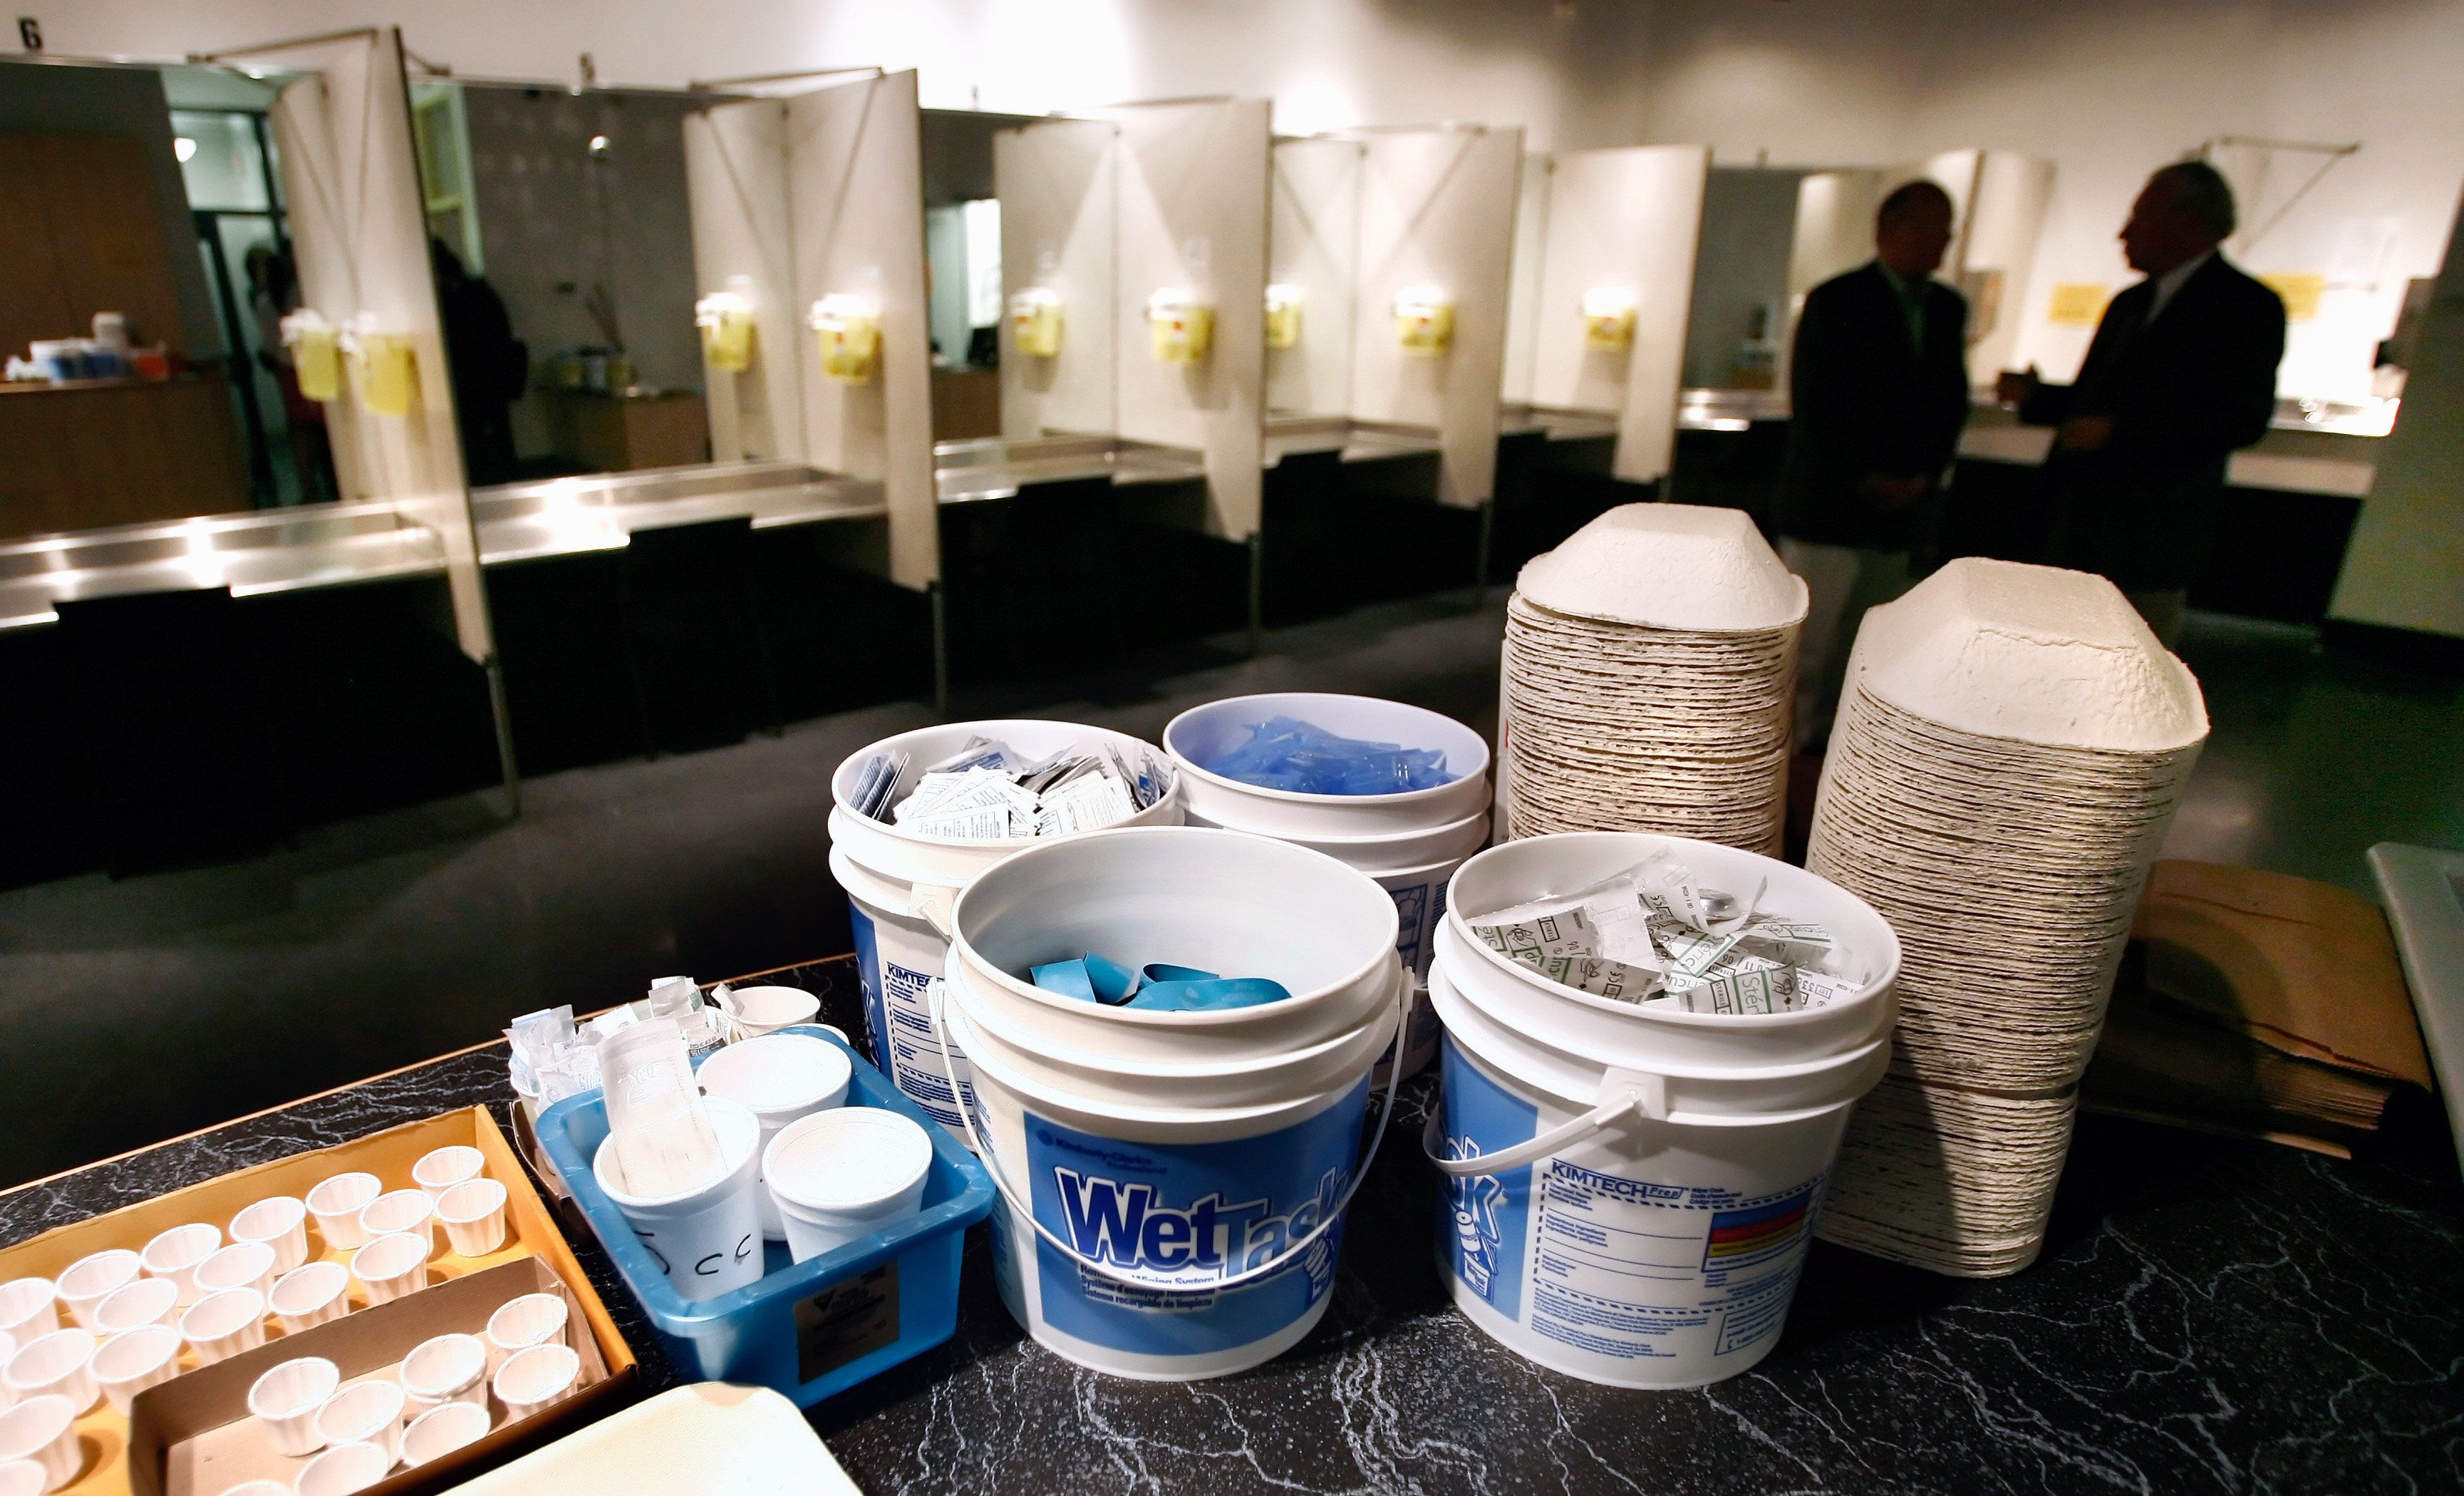 Supplies including syringes, bandages and antiseptic pads are stocked at a safe injection site in Vancouver, British Col